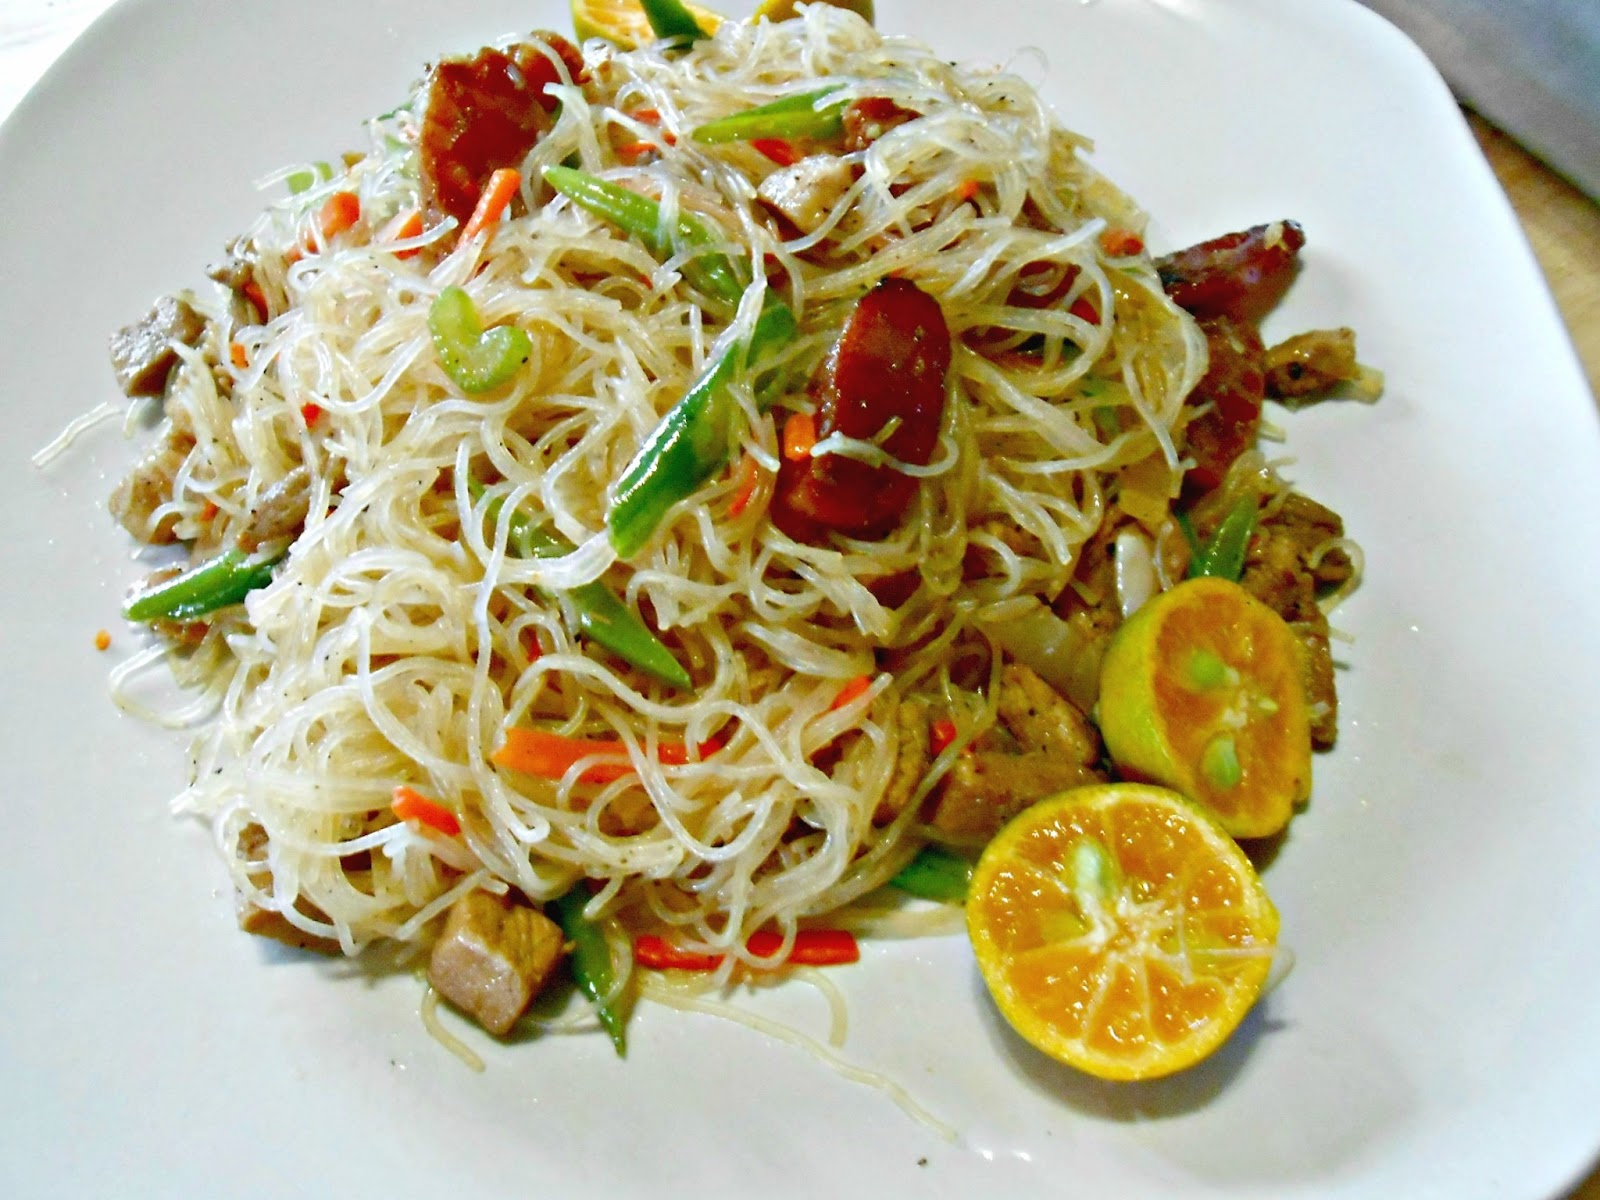 ... stir fried rice noodles with a mix of fresh vegetables like green